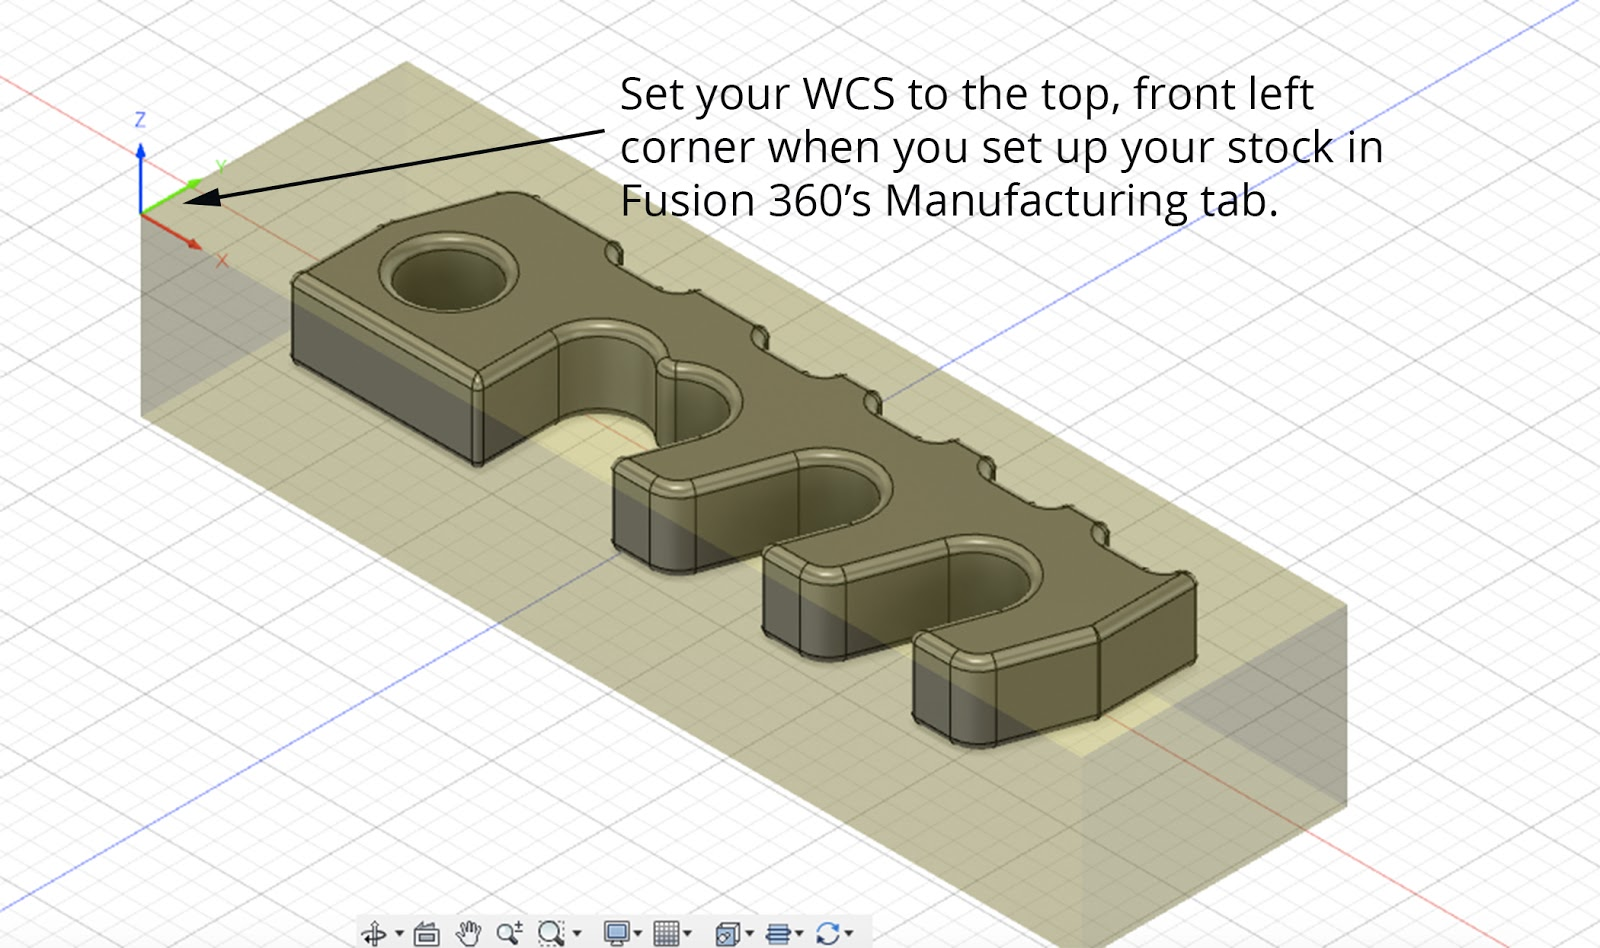 Setting-Up-WCS-System-in-Fusion-360.jpg